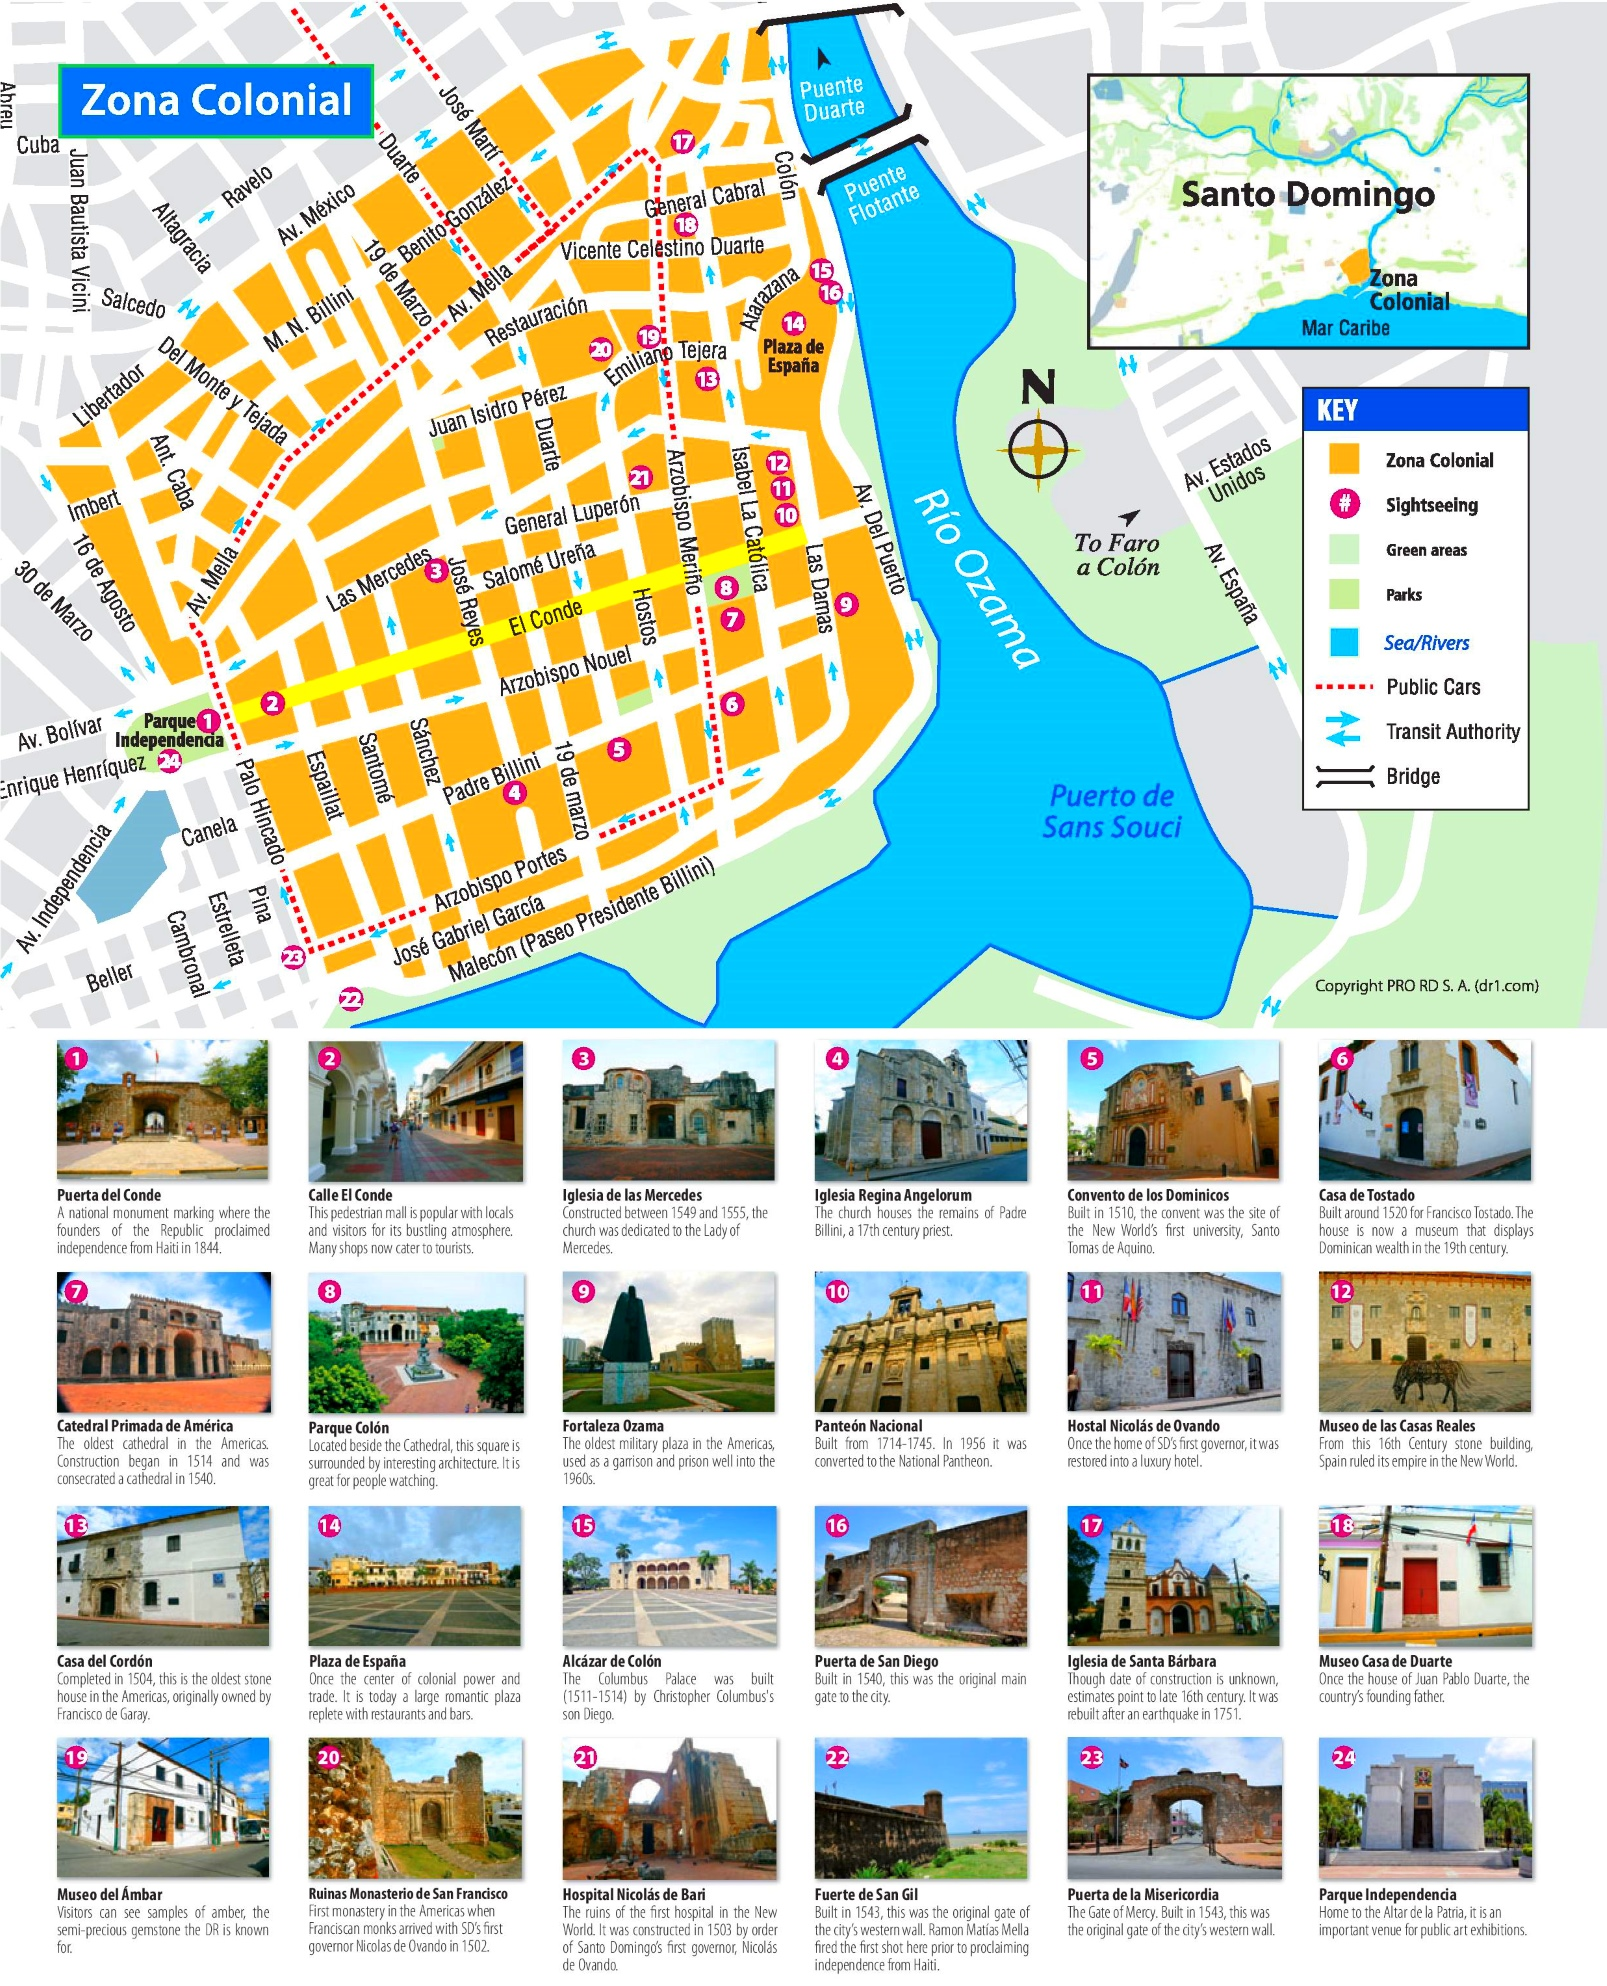 Santo Domingo Ciudad Colonial map